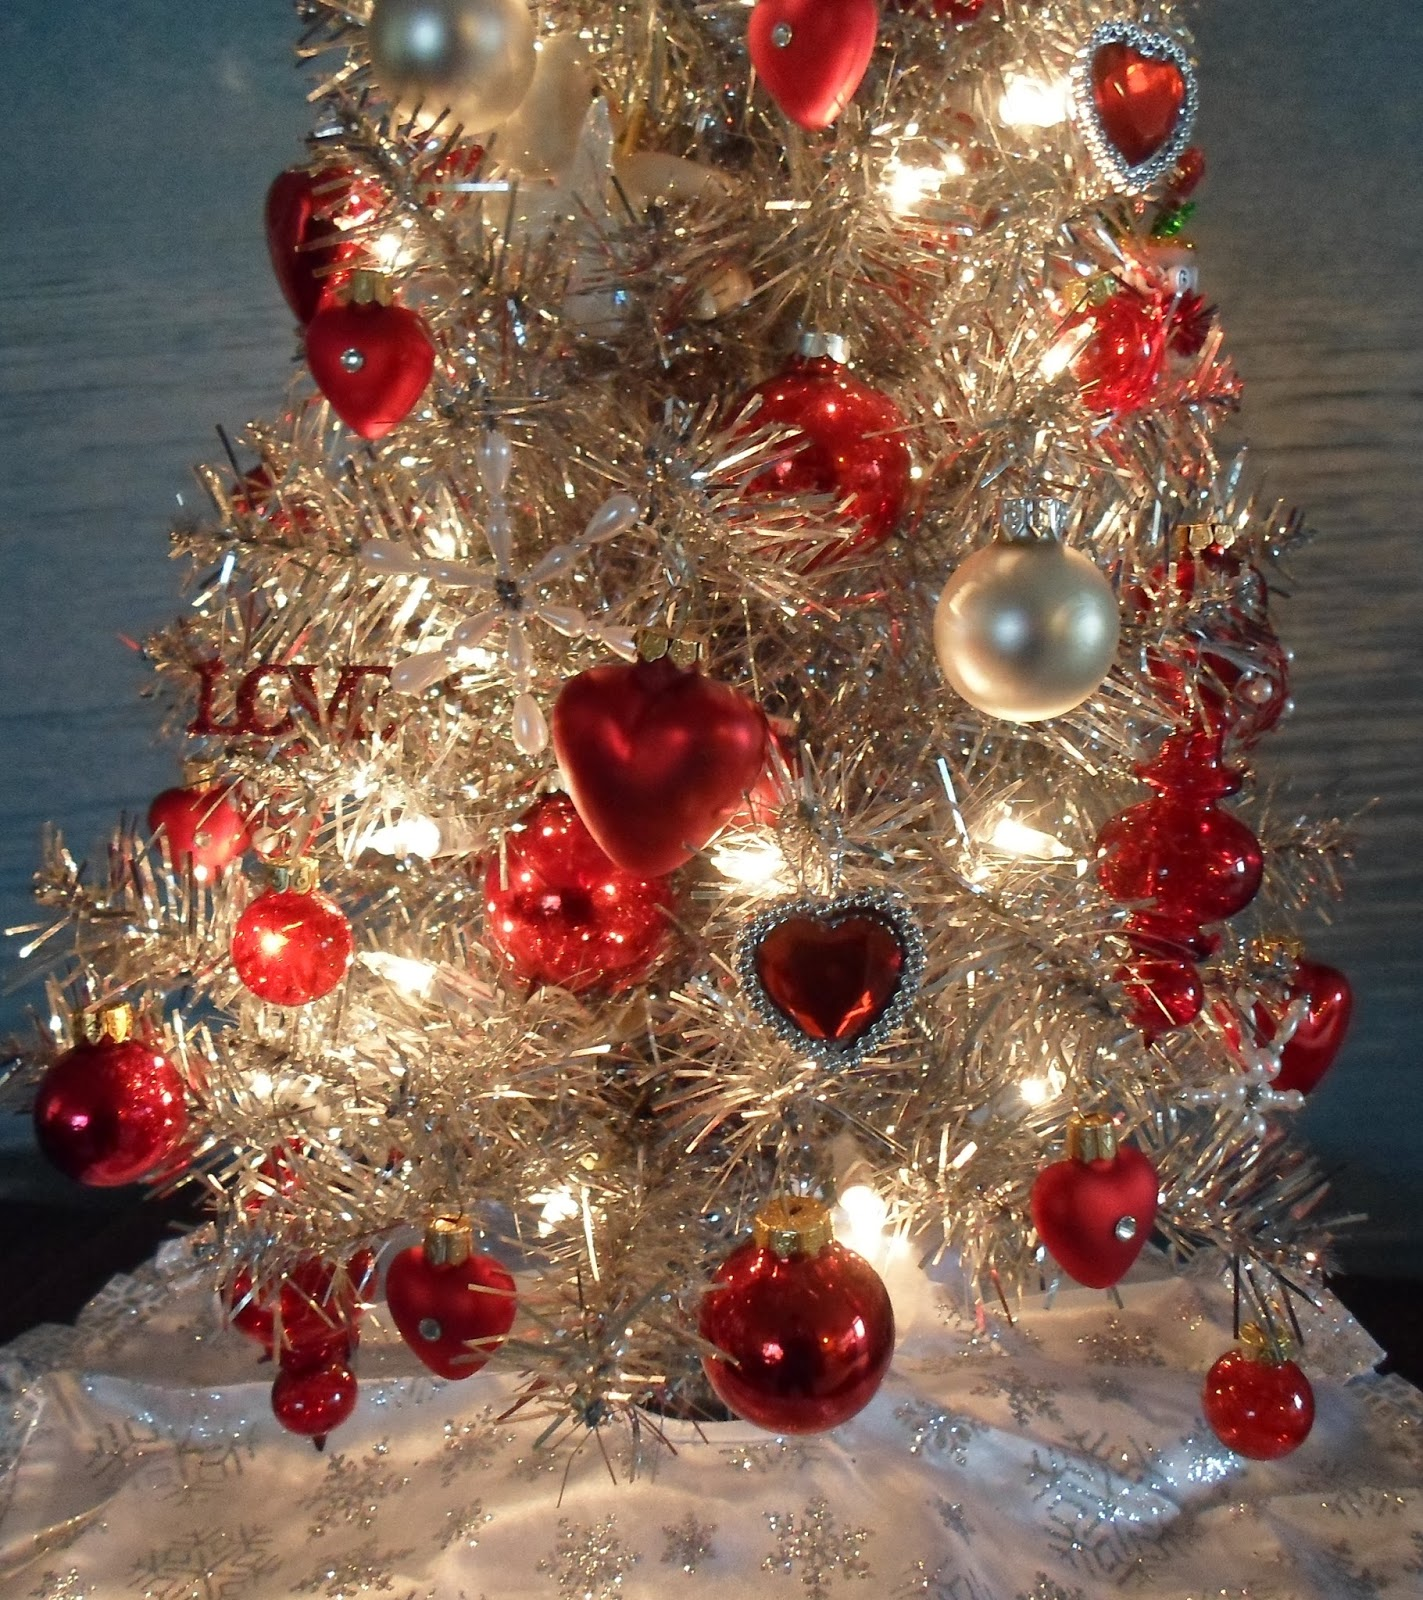 Valentine tree ornaments - These Blingy Valentine Heart Ornaments From Dollar Tree Rings Are A Cute Idea Upper Right And Lower Center Of Pic The Hearts Are A Good 1 1 4 And Are A